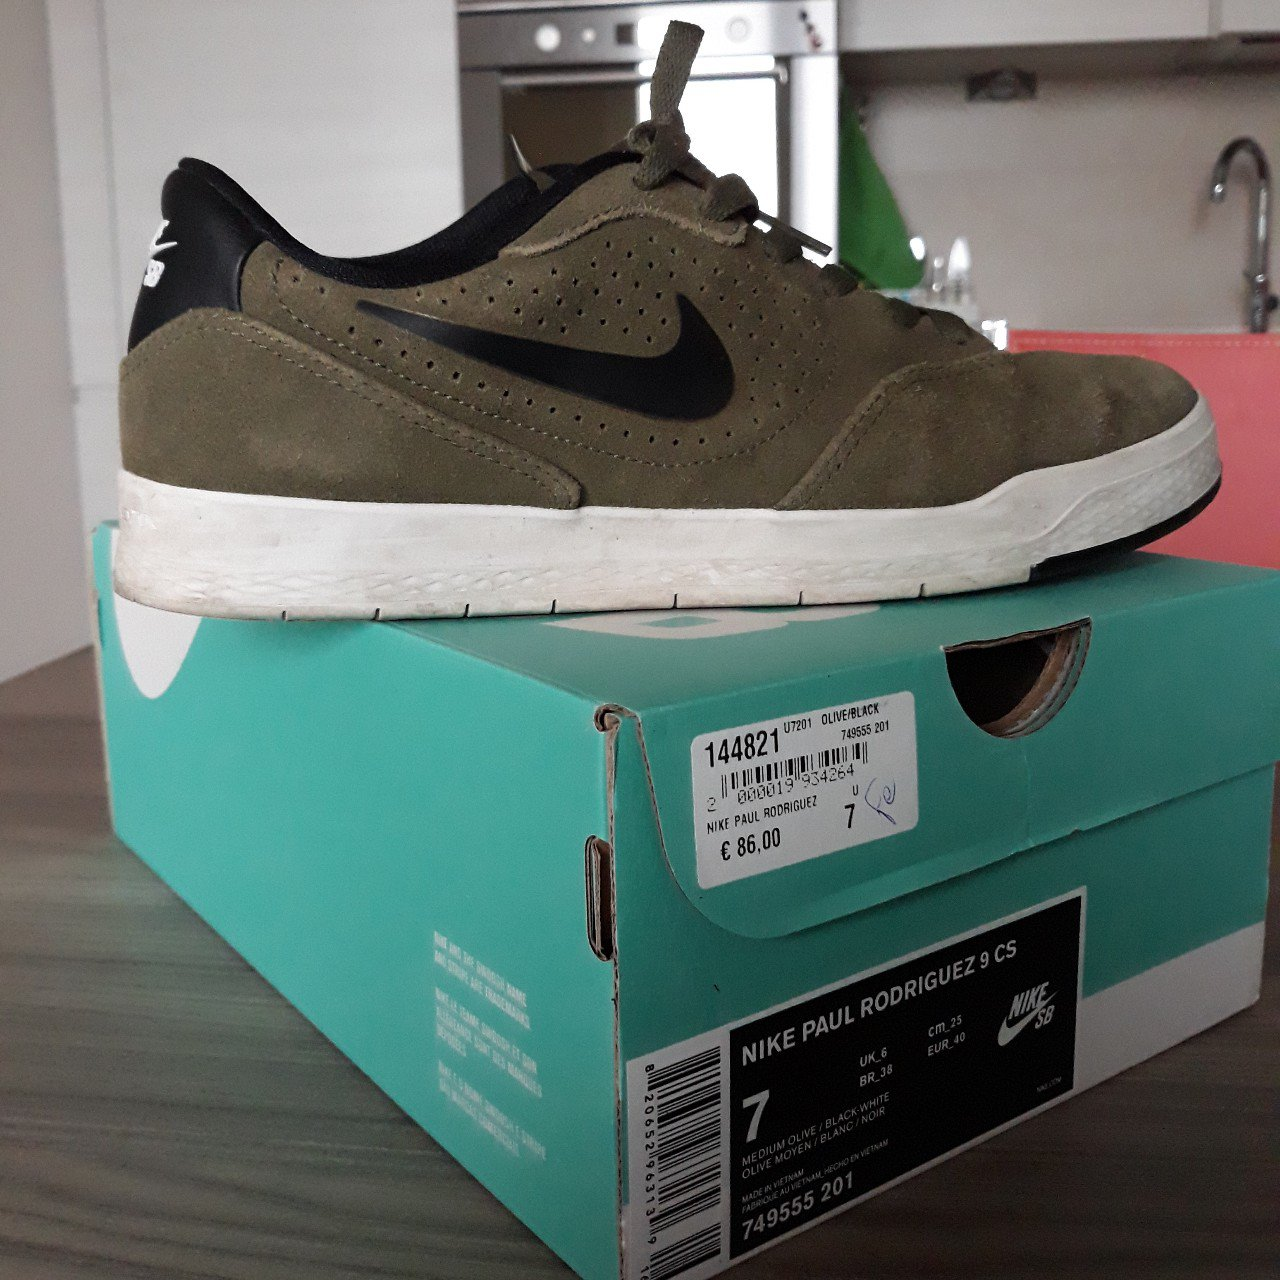 ea4c09aa504643 Nike Paul rodriguez 9 Cs. Color oliva militare